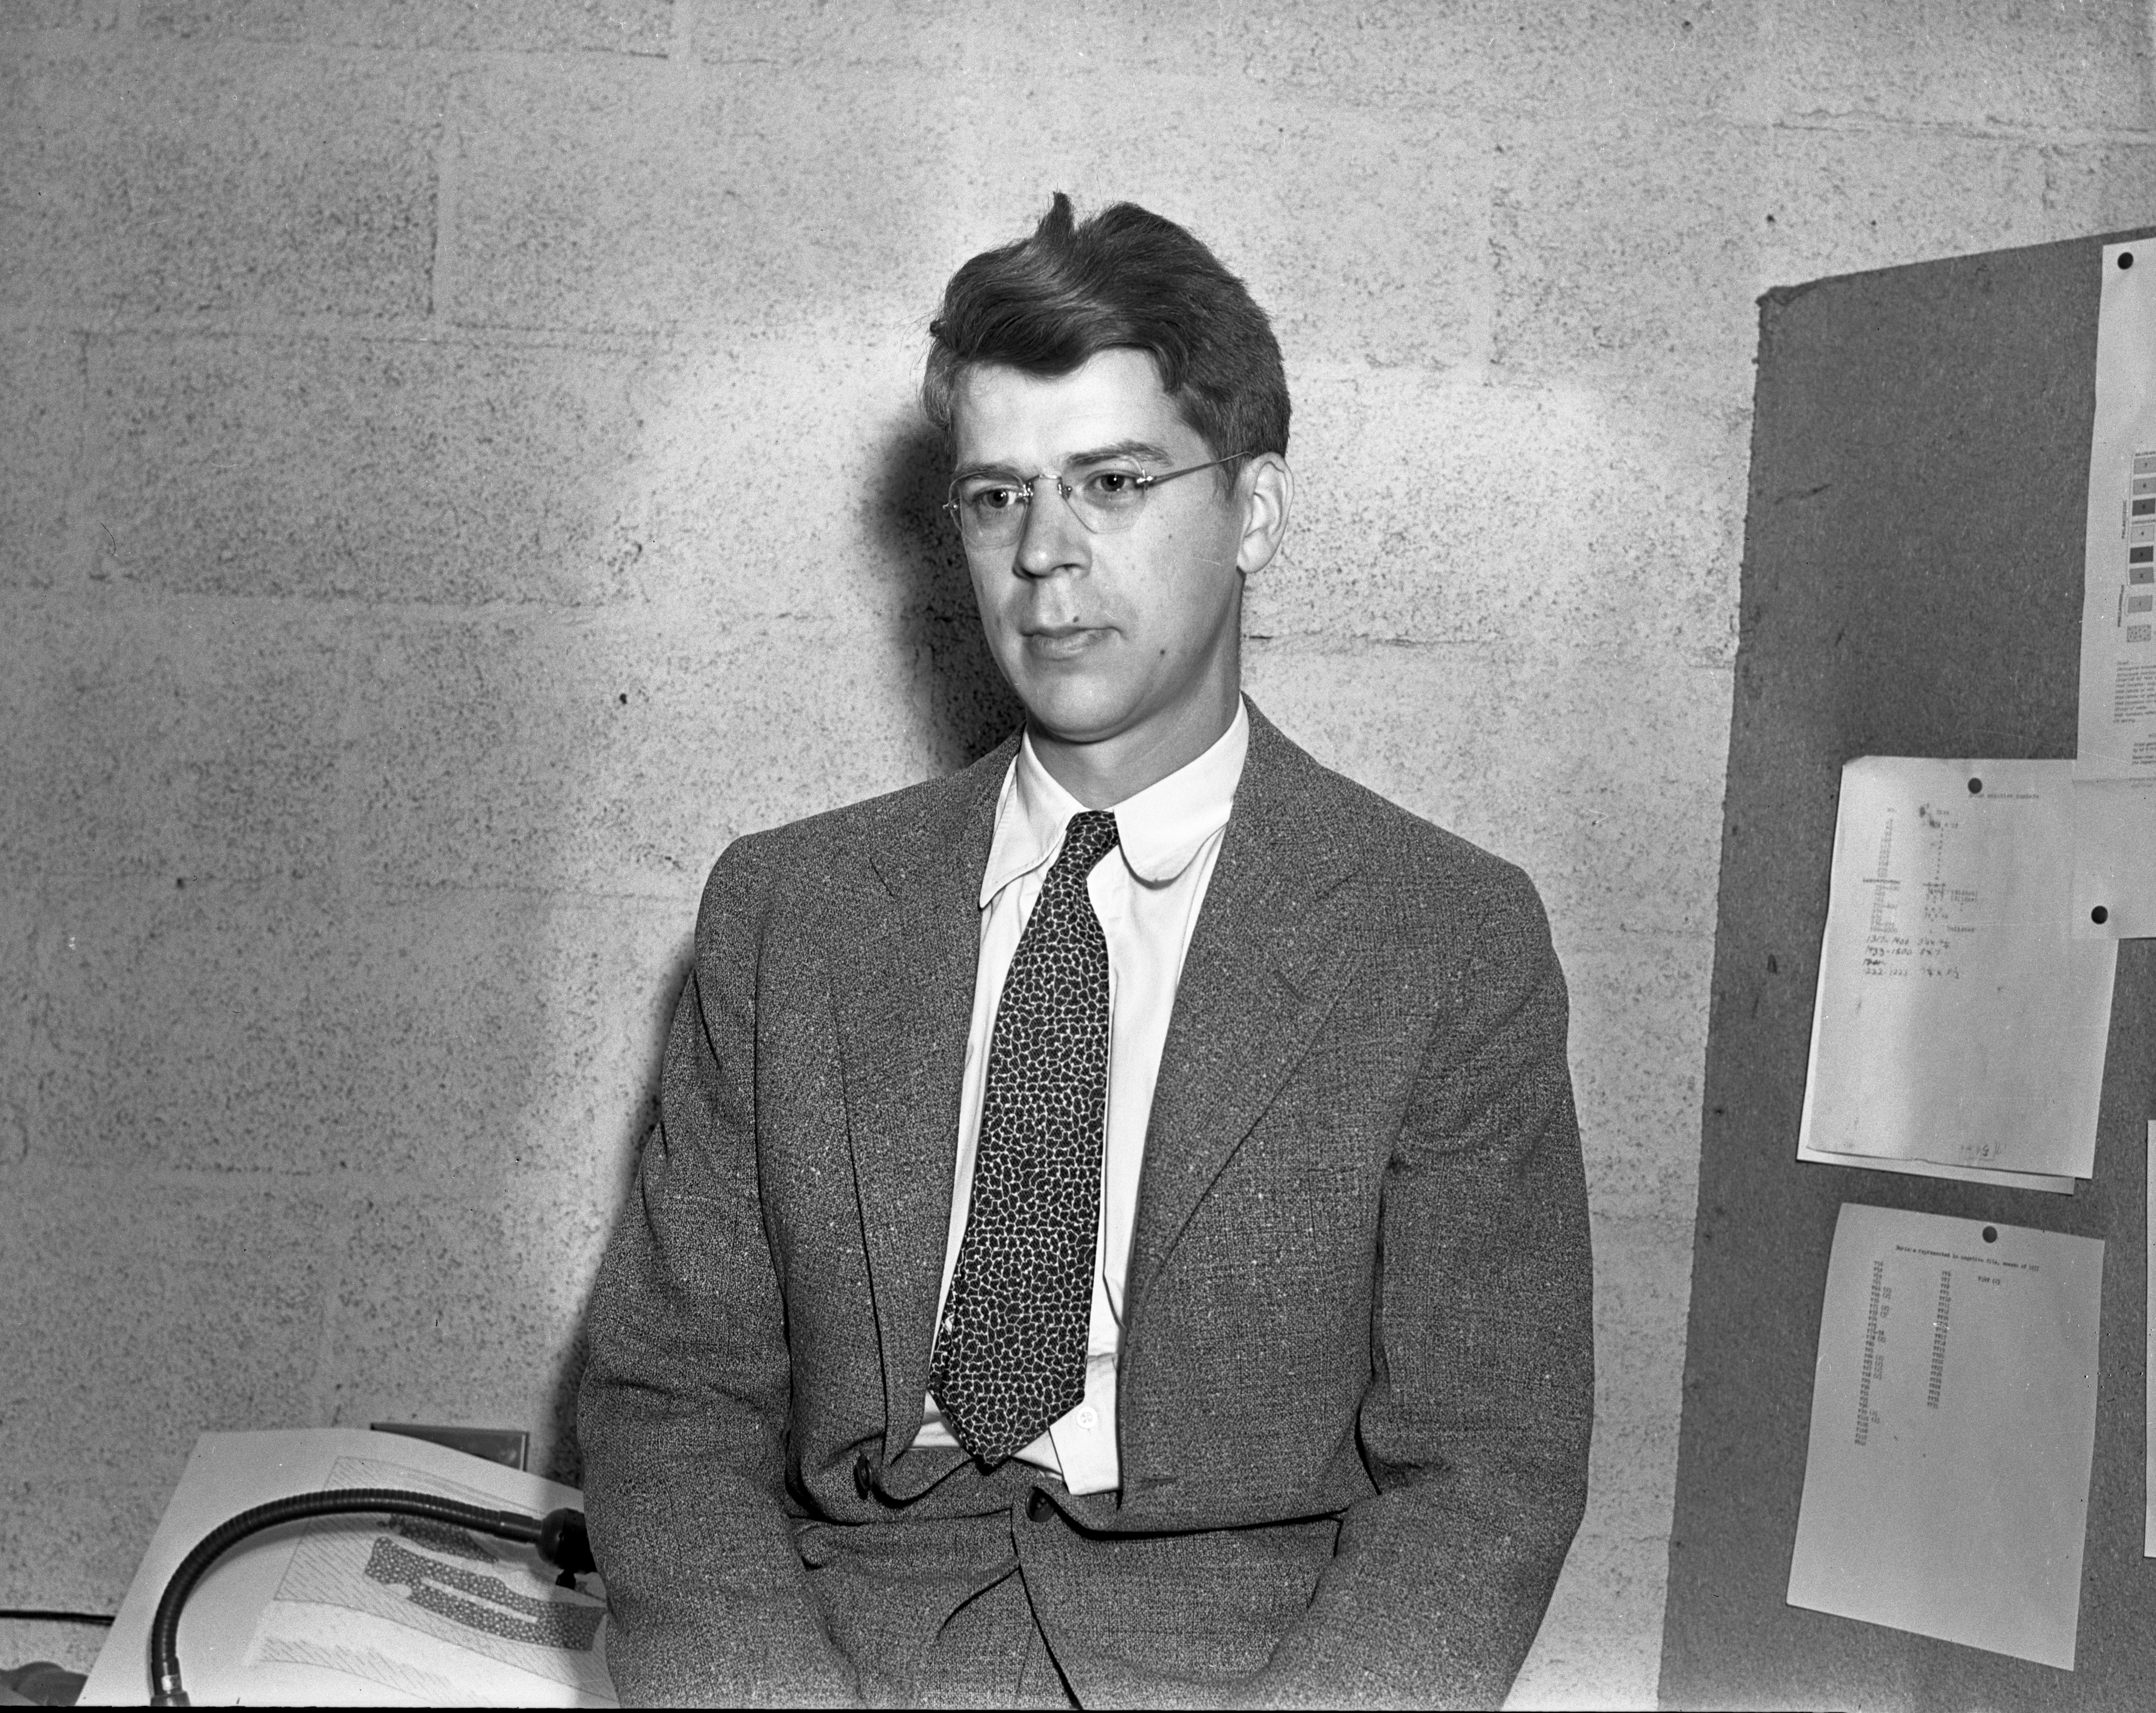 University of Michigan Museum faculty: Mr. Kinetz, June 1938 image